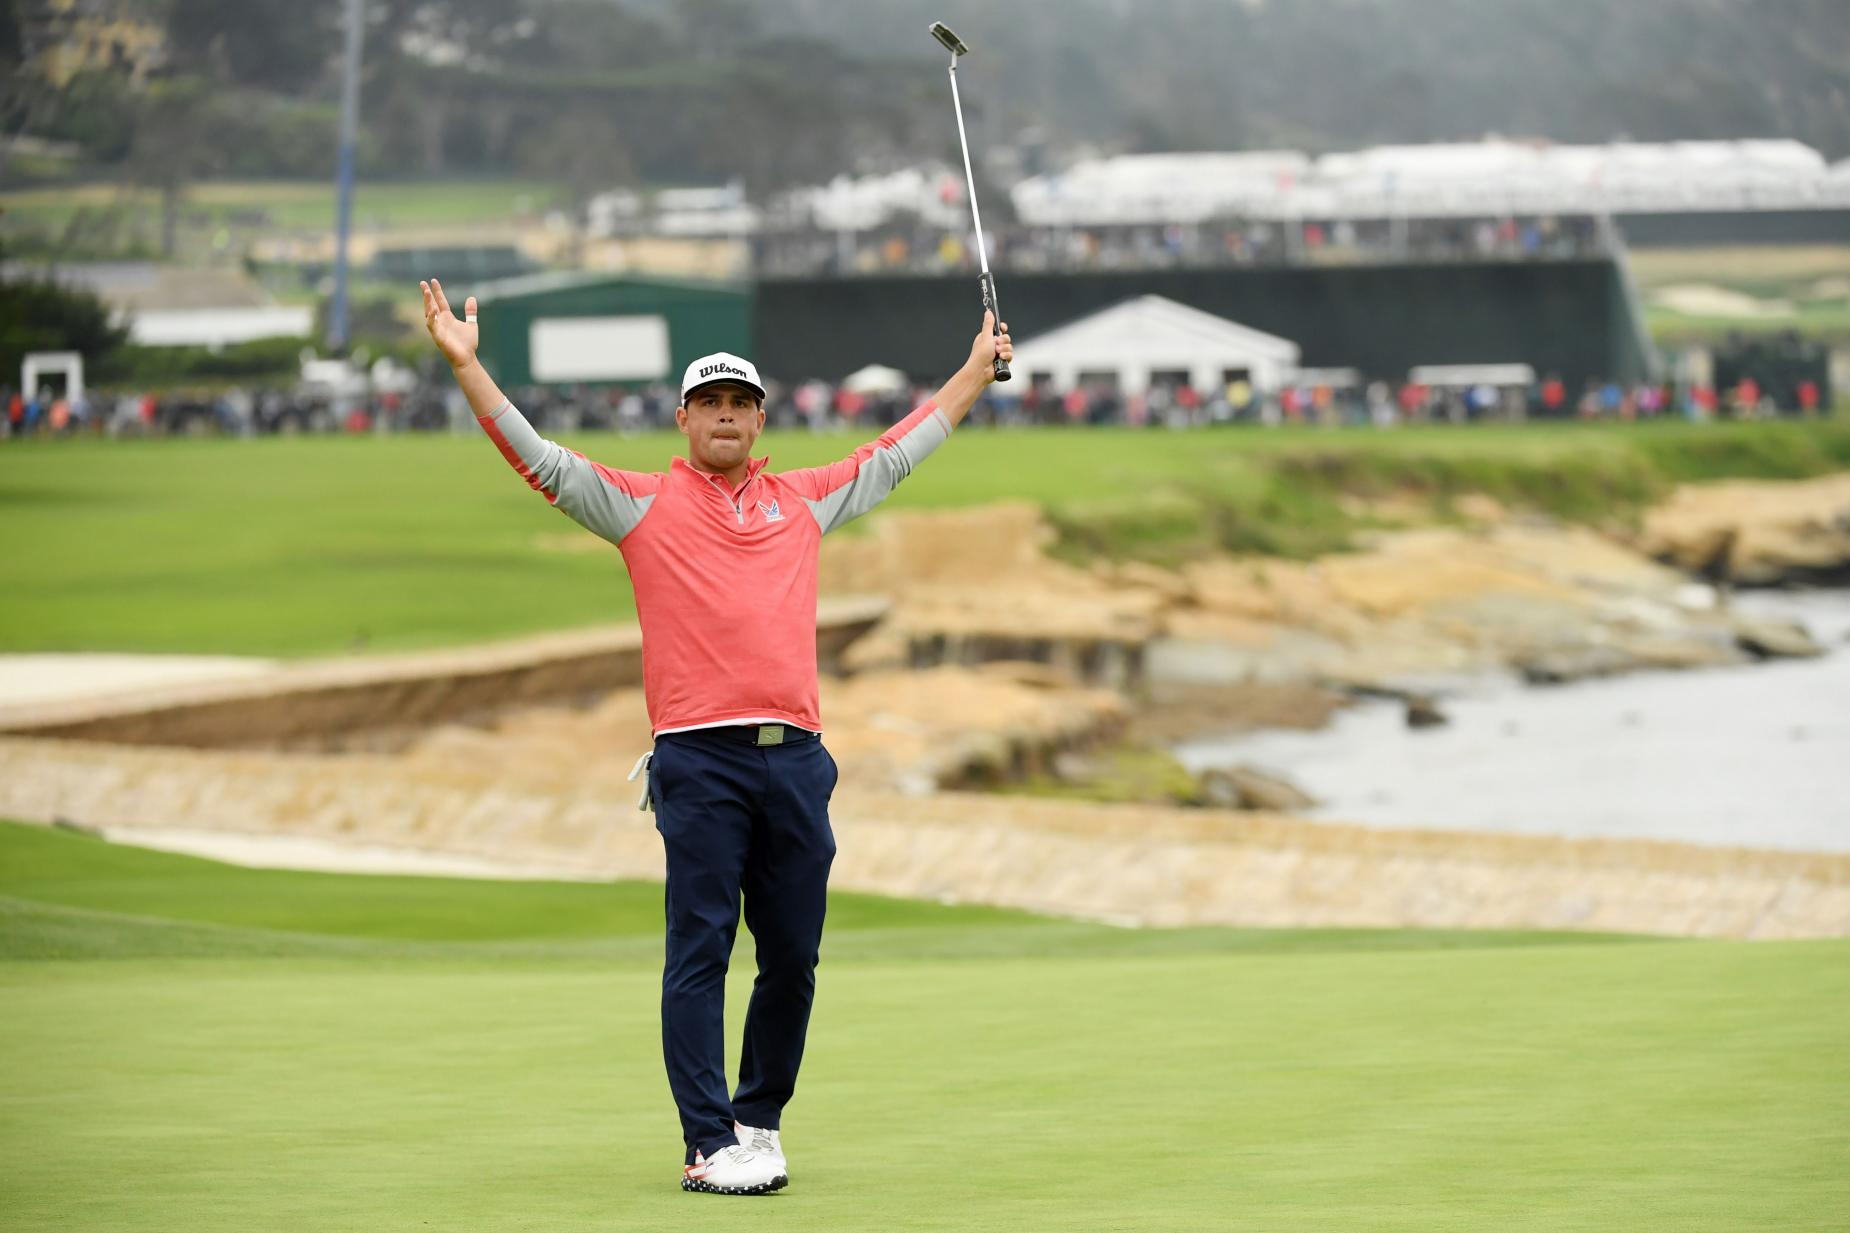 gary-woodland-us-open-pebble-sunday-2019-celebration.jpg